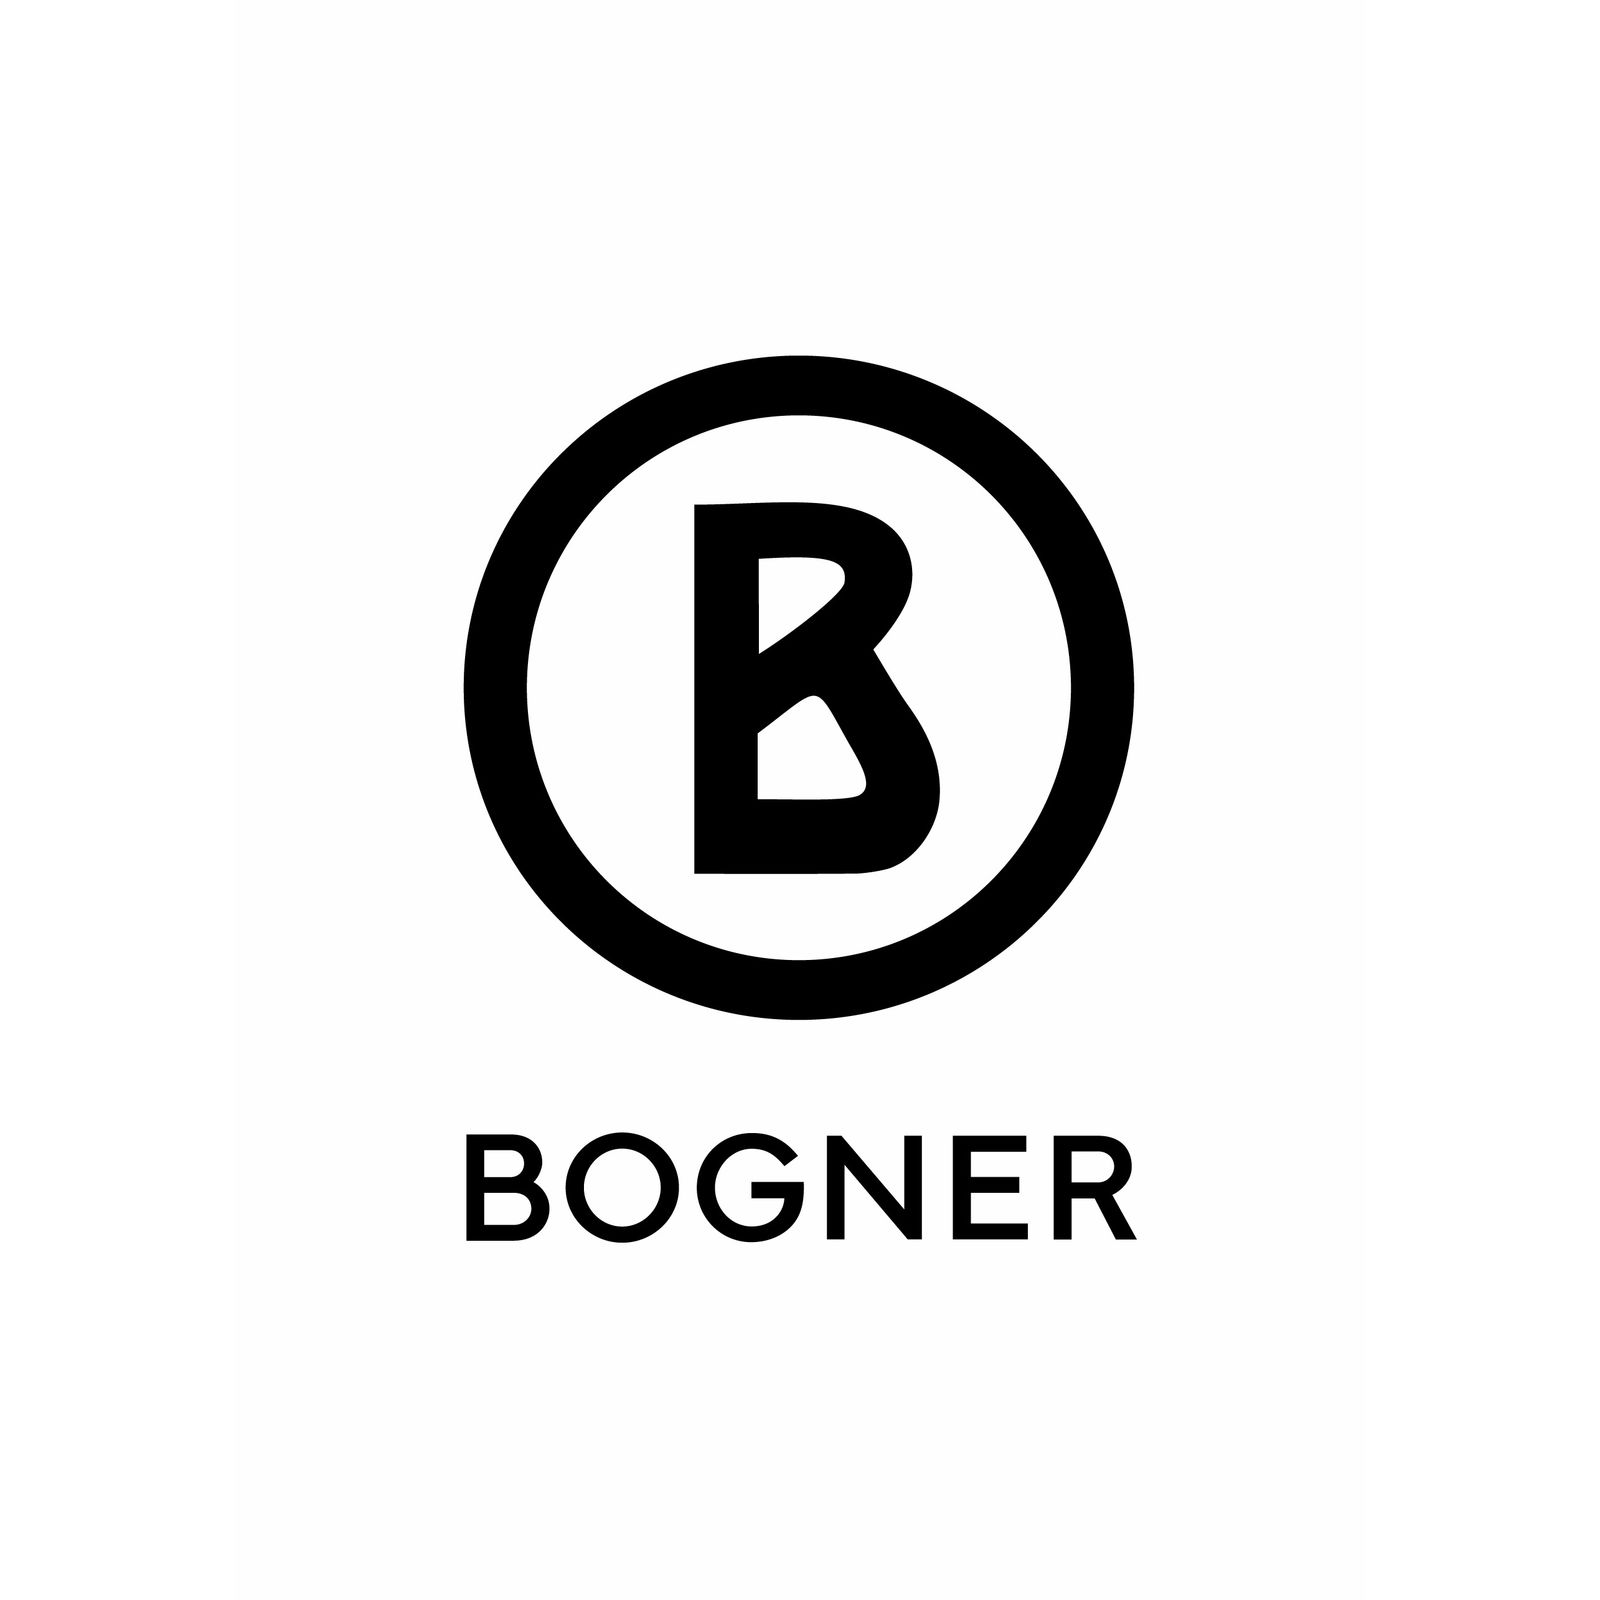 BOGNER Leather (Image 1)